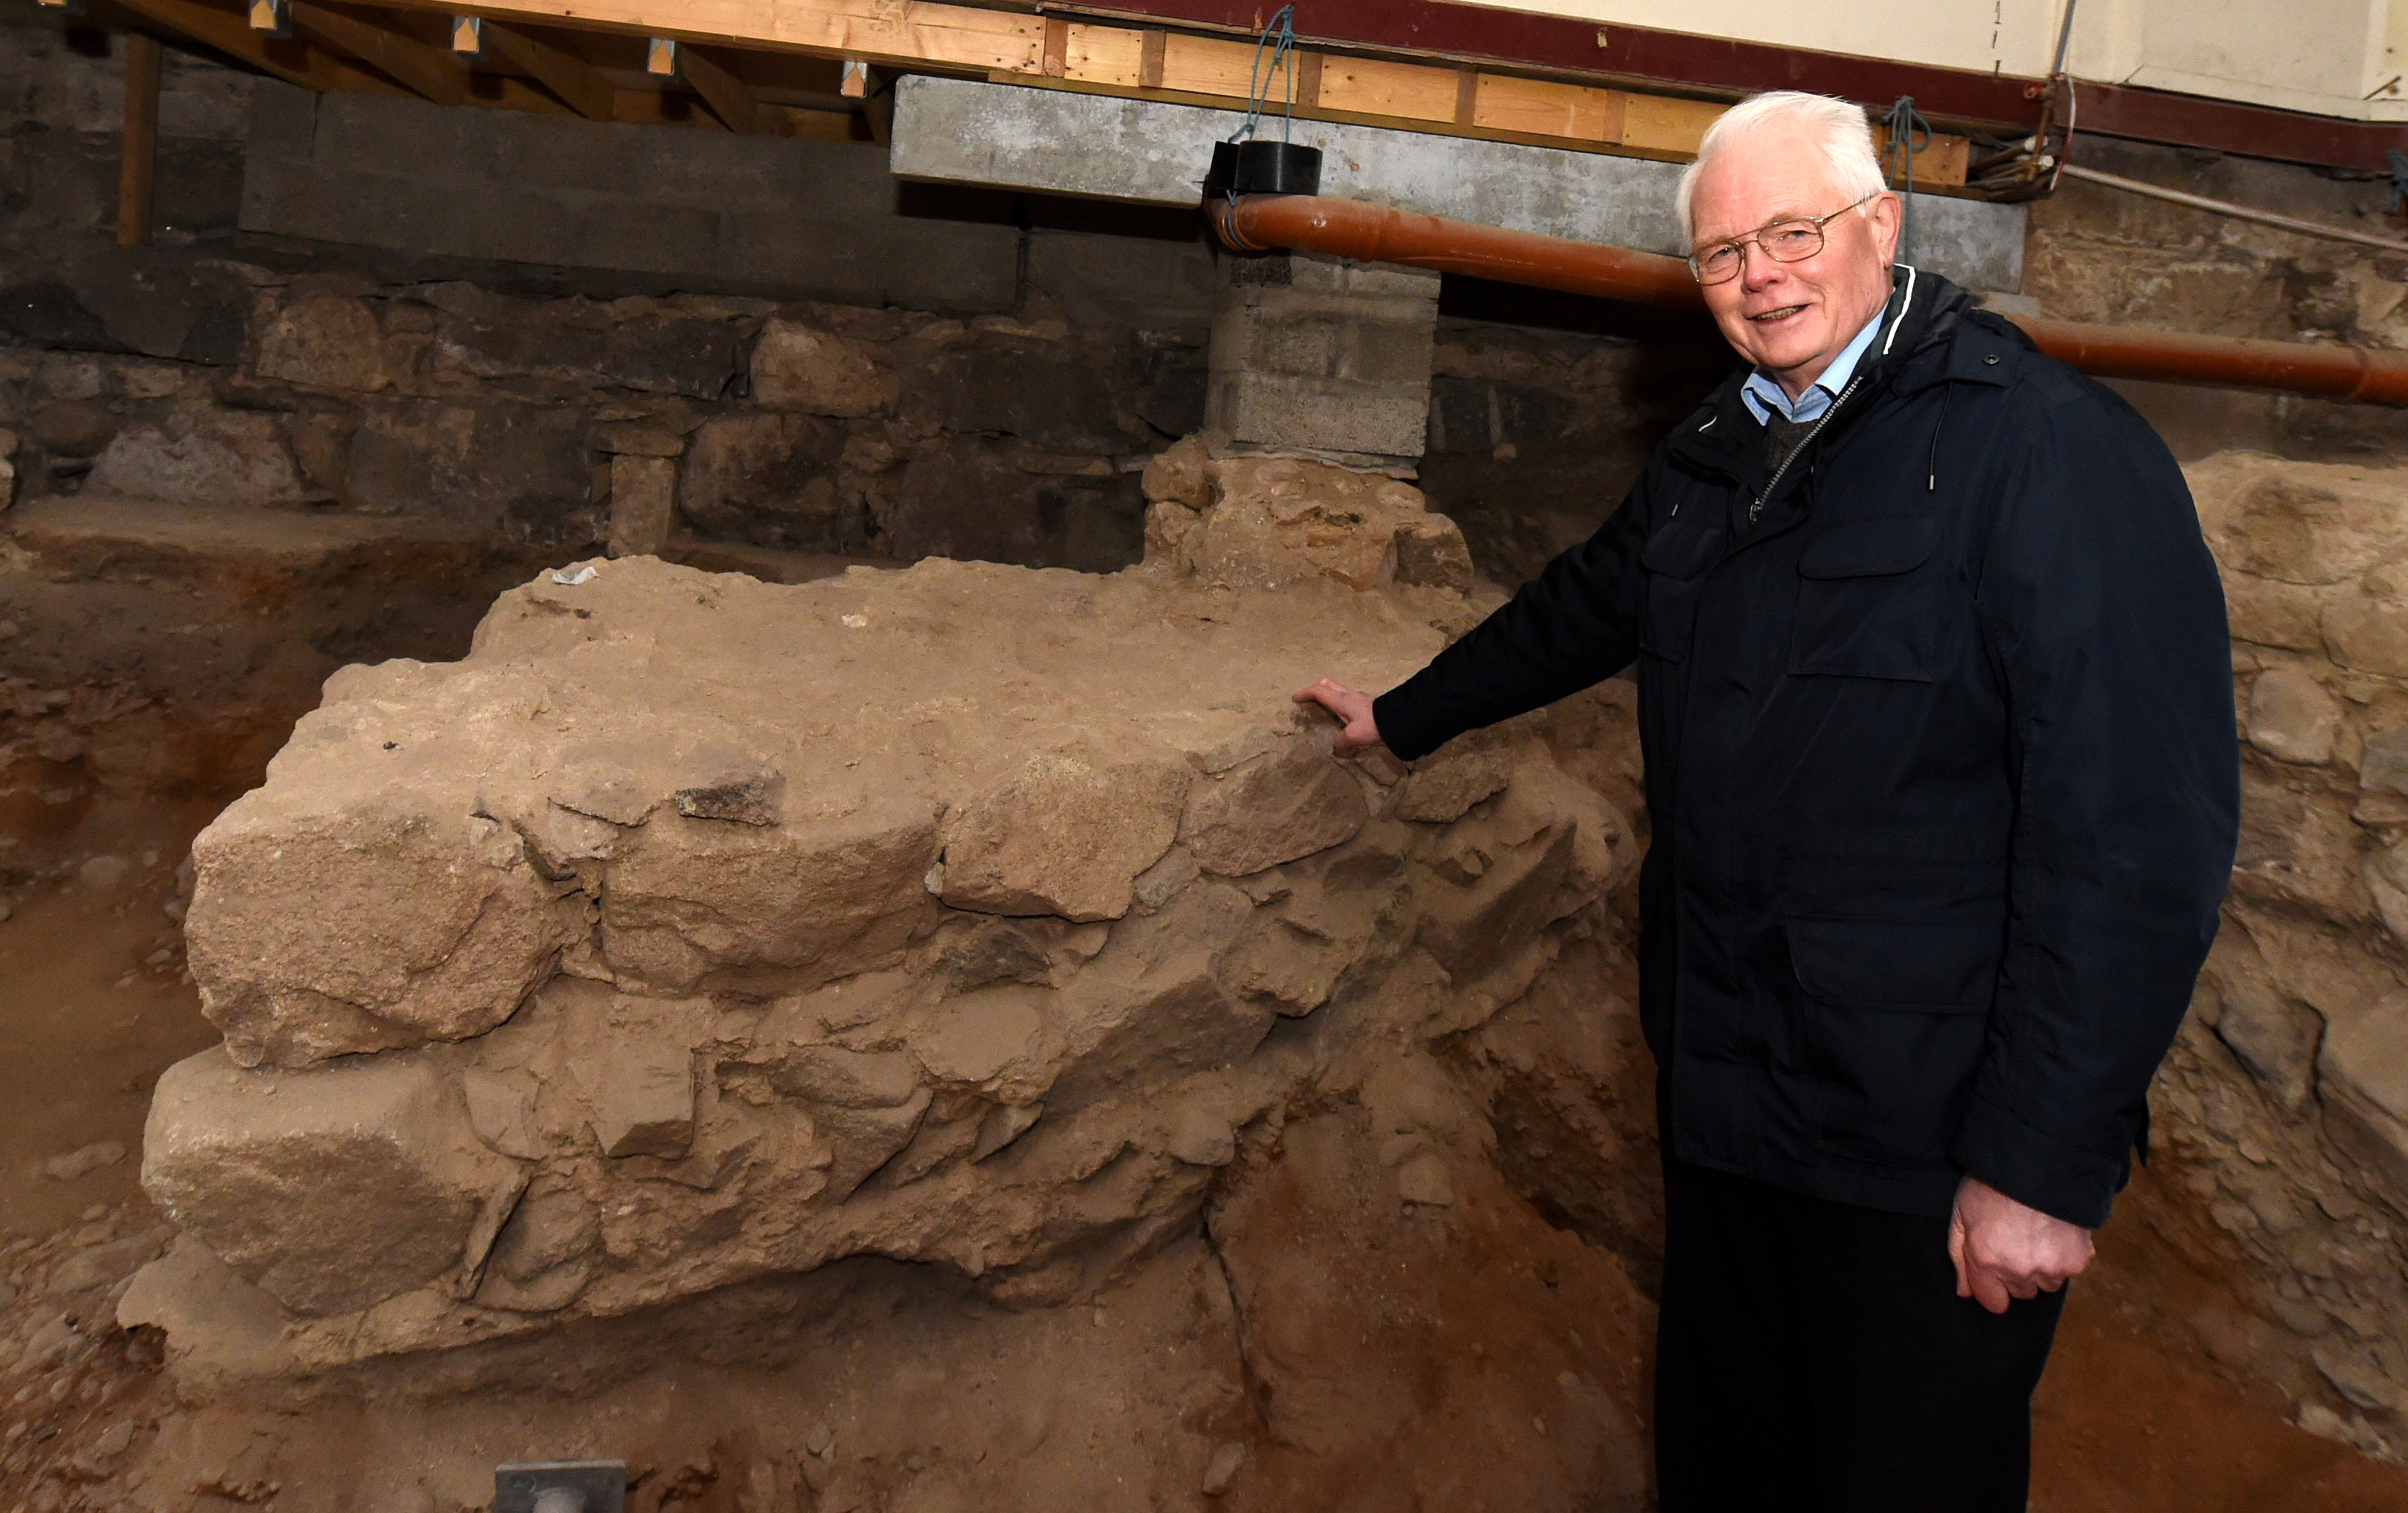 Church elder Arthur Winfield has been involved in the Mither Kirk project since 2003.